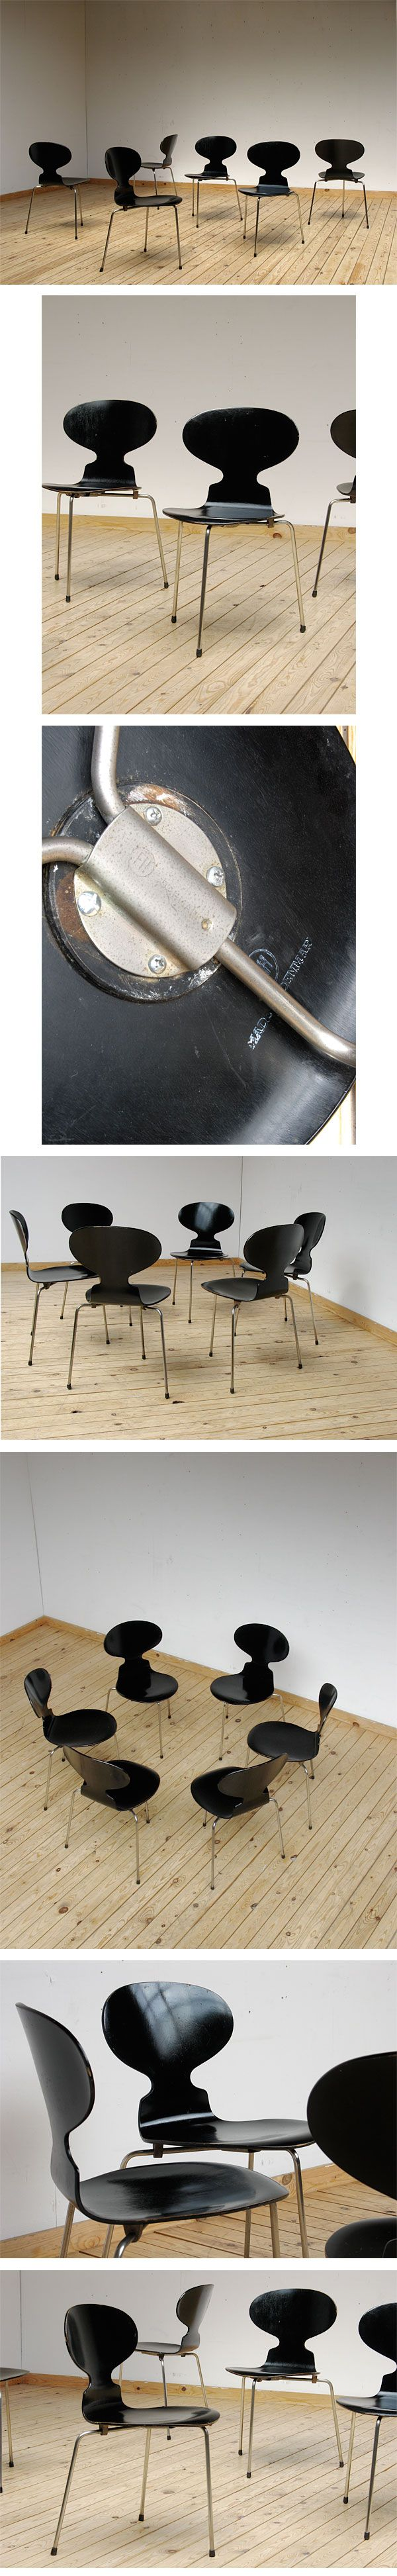 Best 25 Ant chair ideas on Pinterest